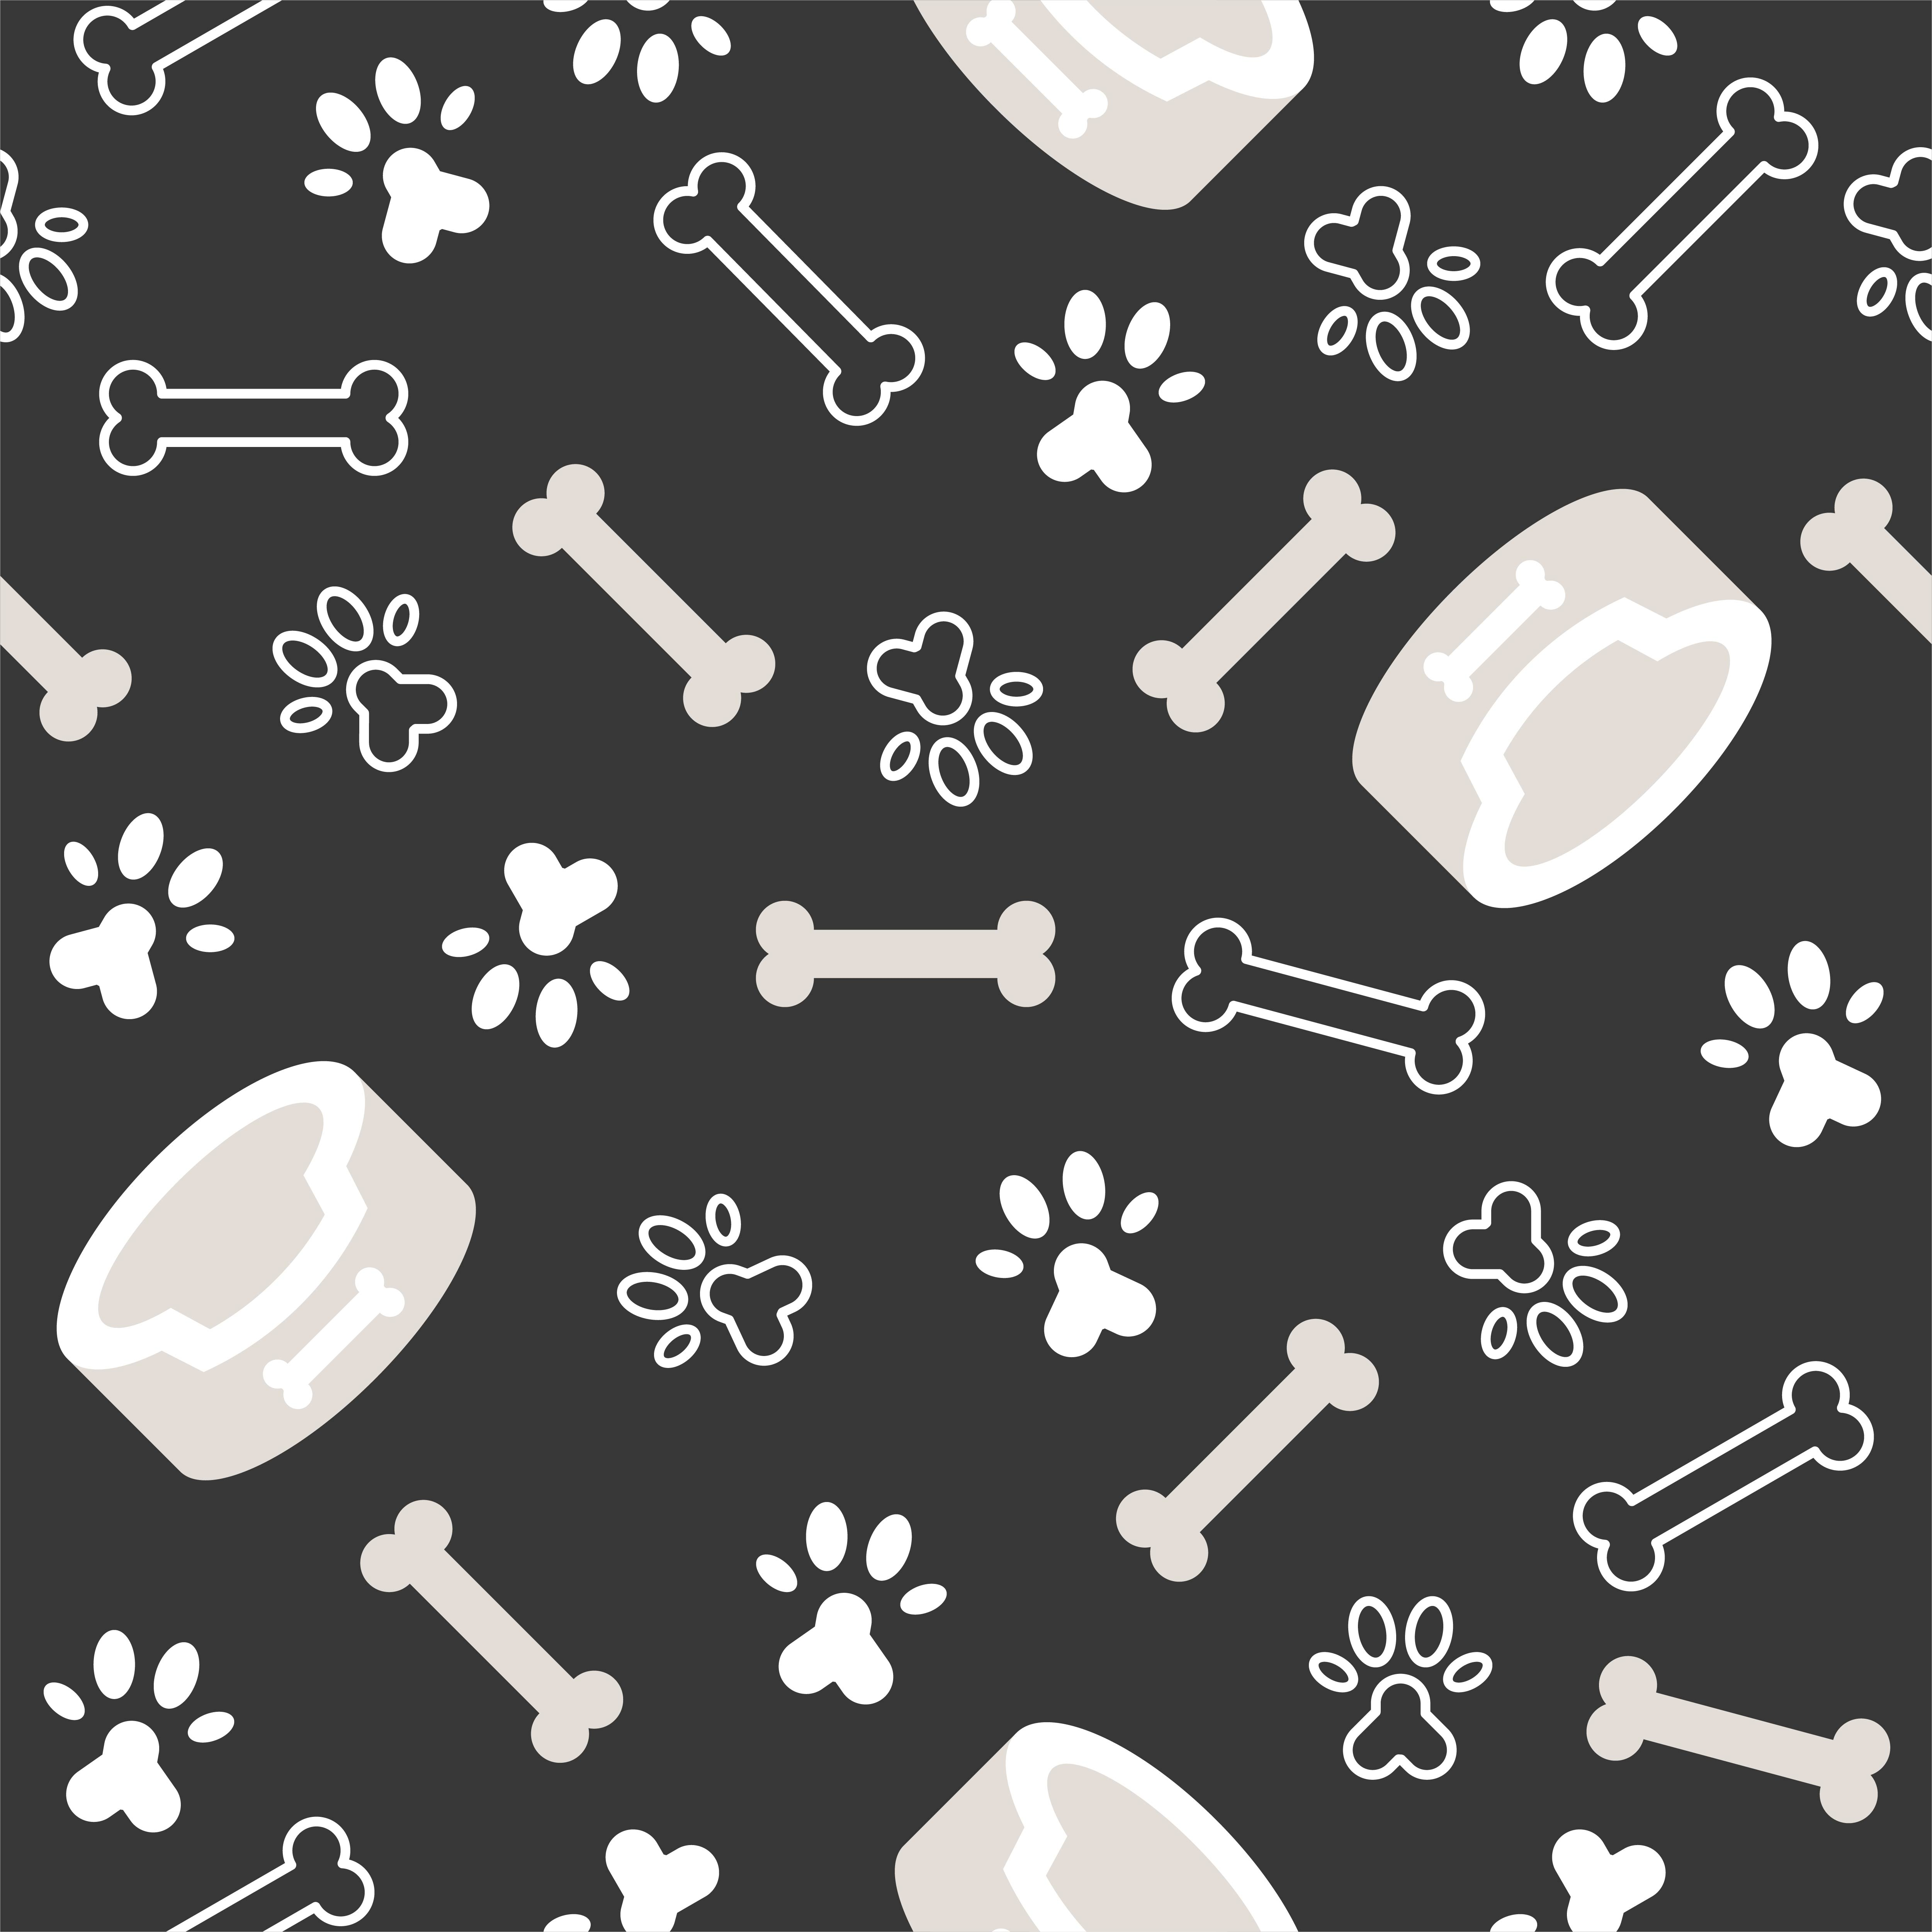 Dog Seamless Pattern Theme Bone Paw Foot Print For Use